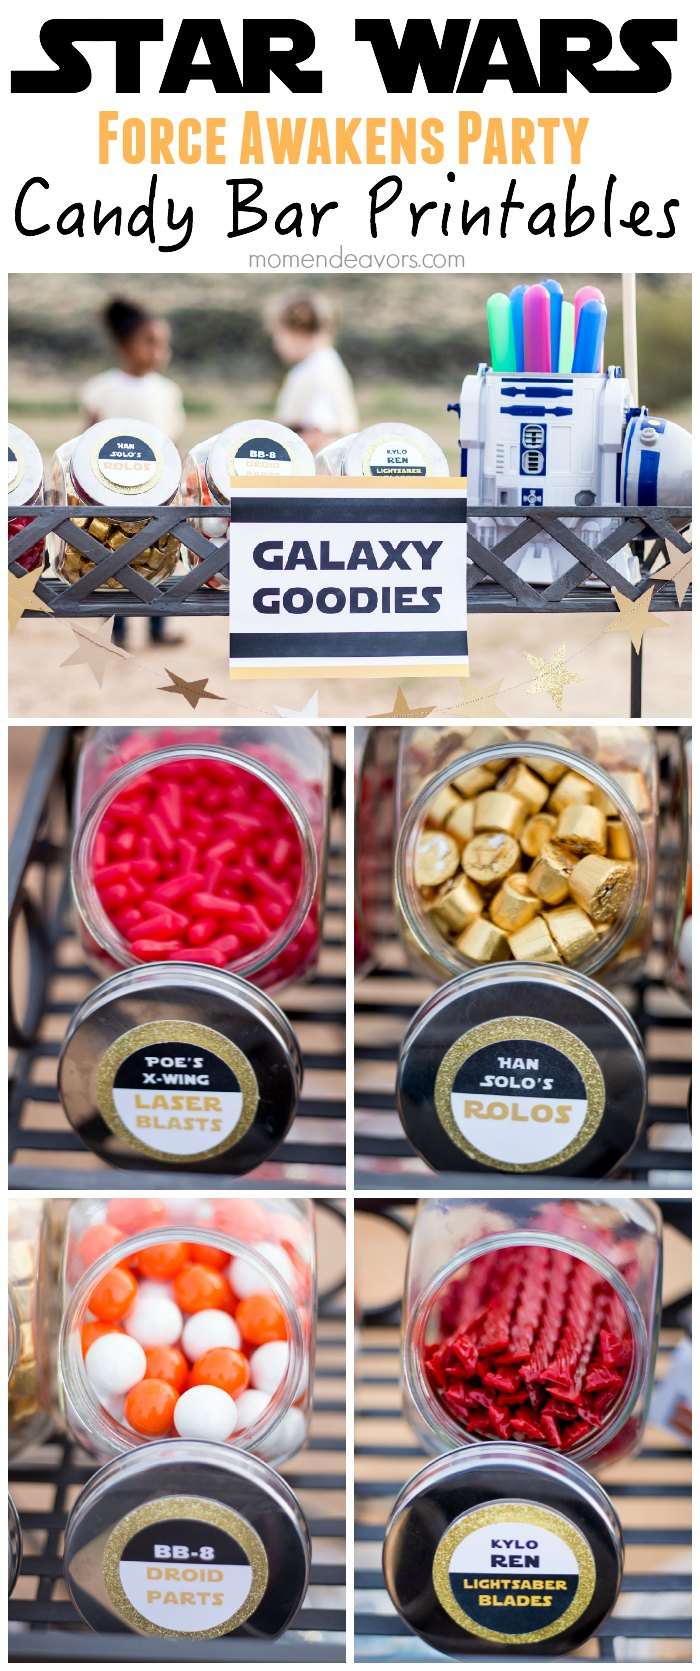 Star Wars Force Awakens Party Candy Bar Printables